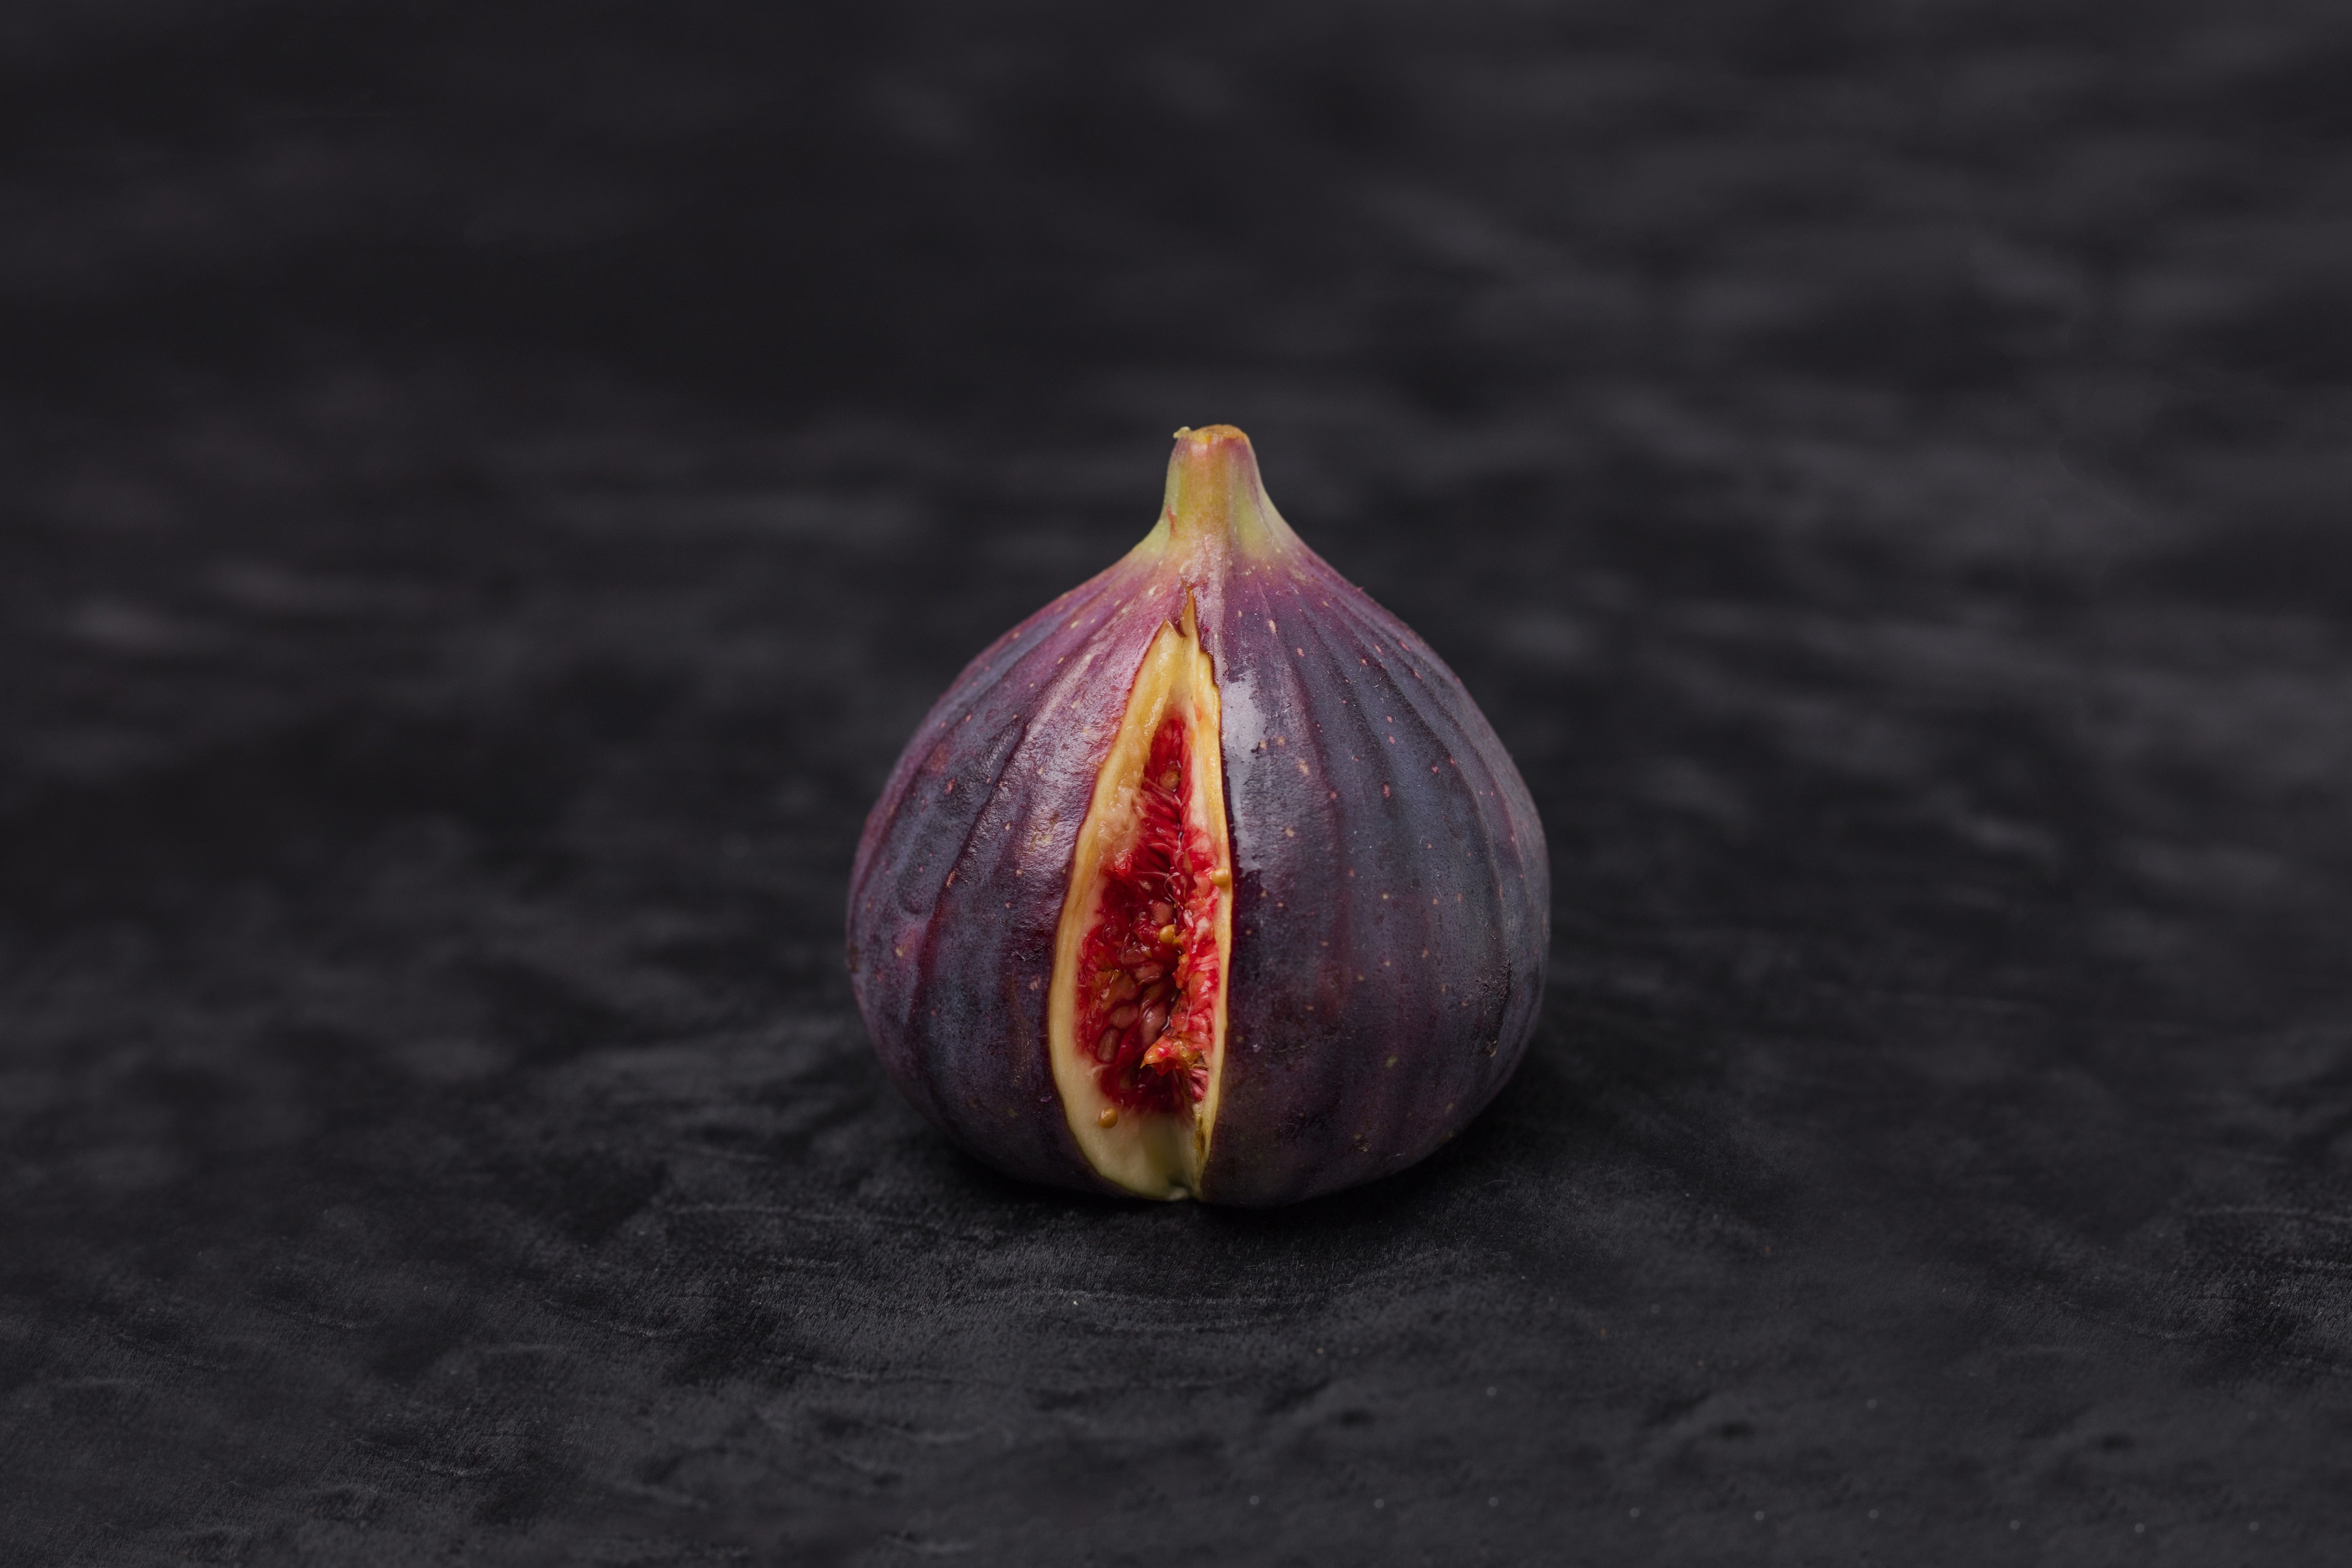 A single purple fig on a dark background with a small slice reveling the pink interior.